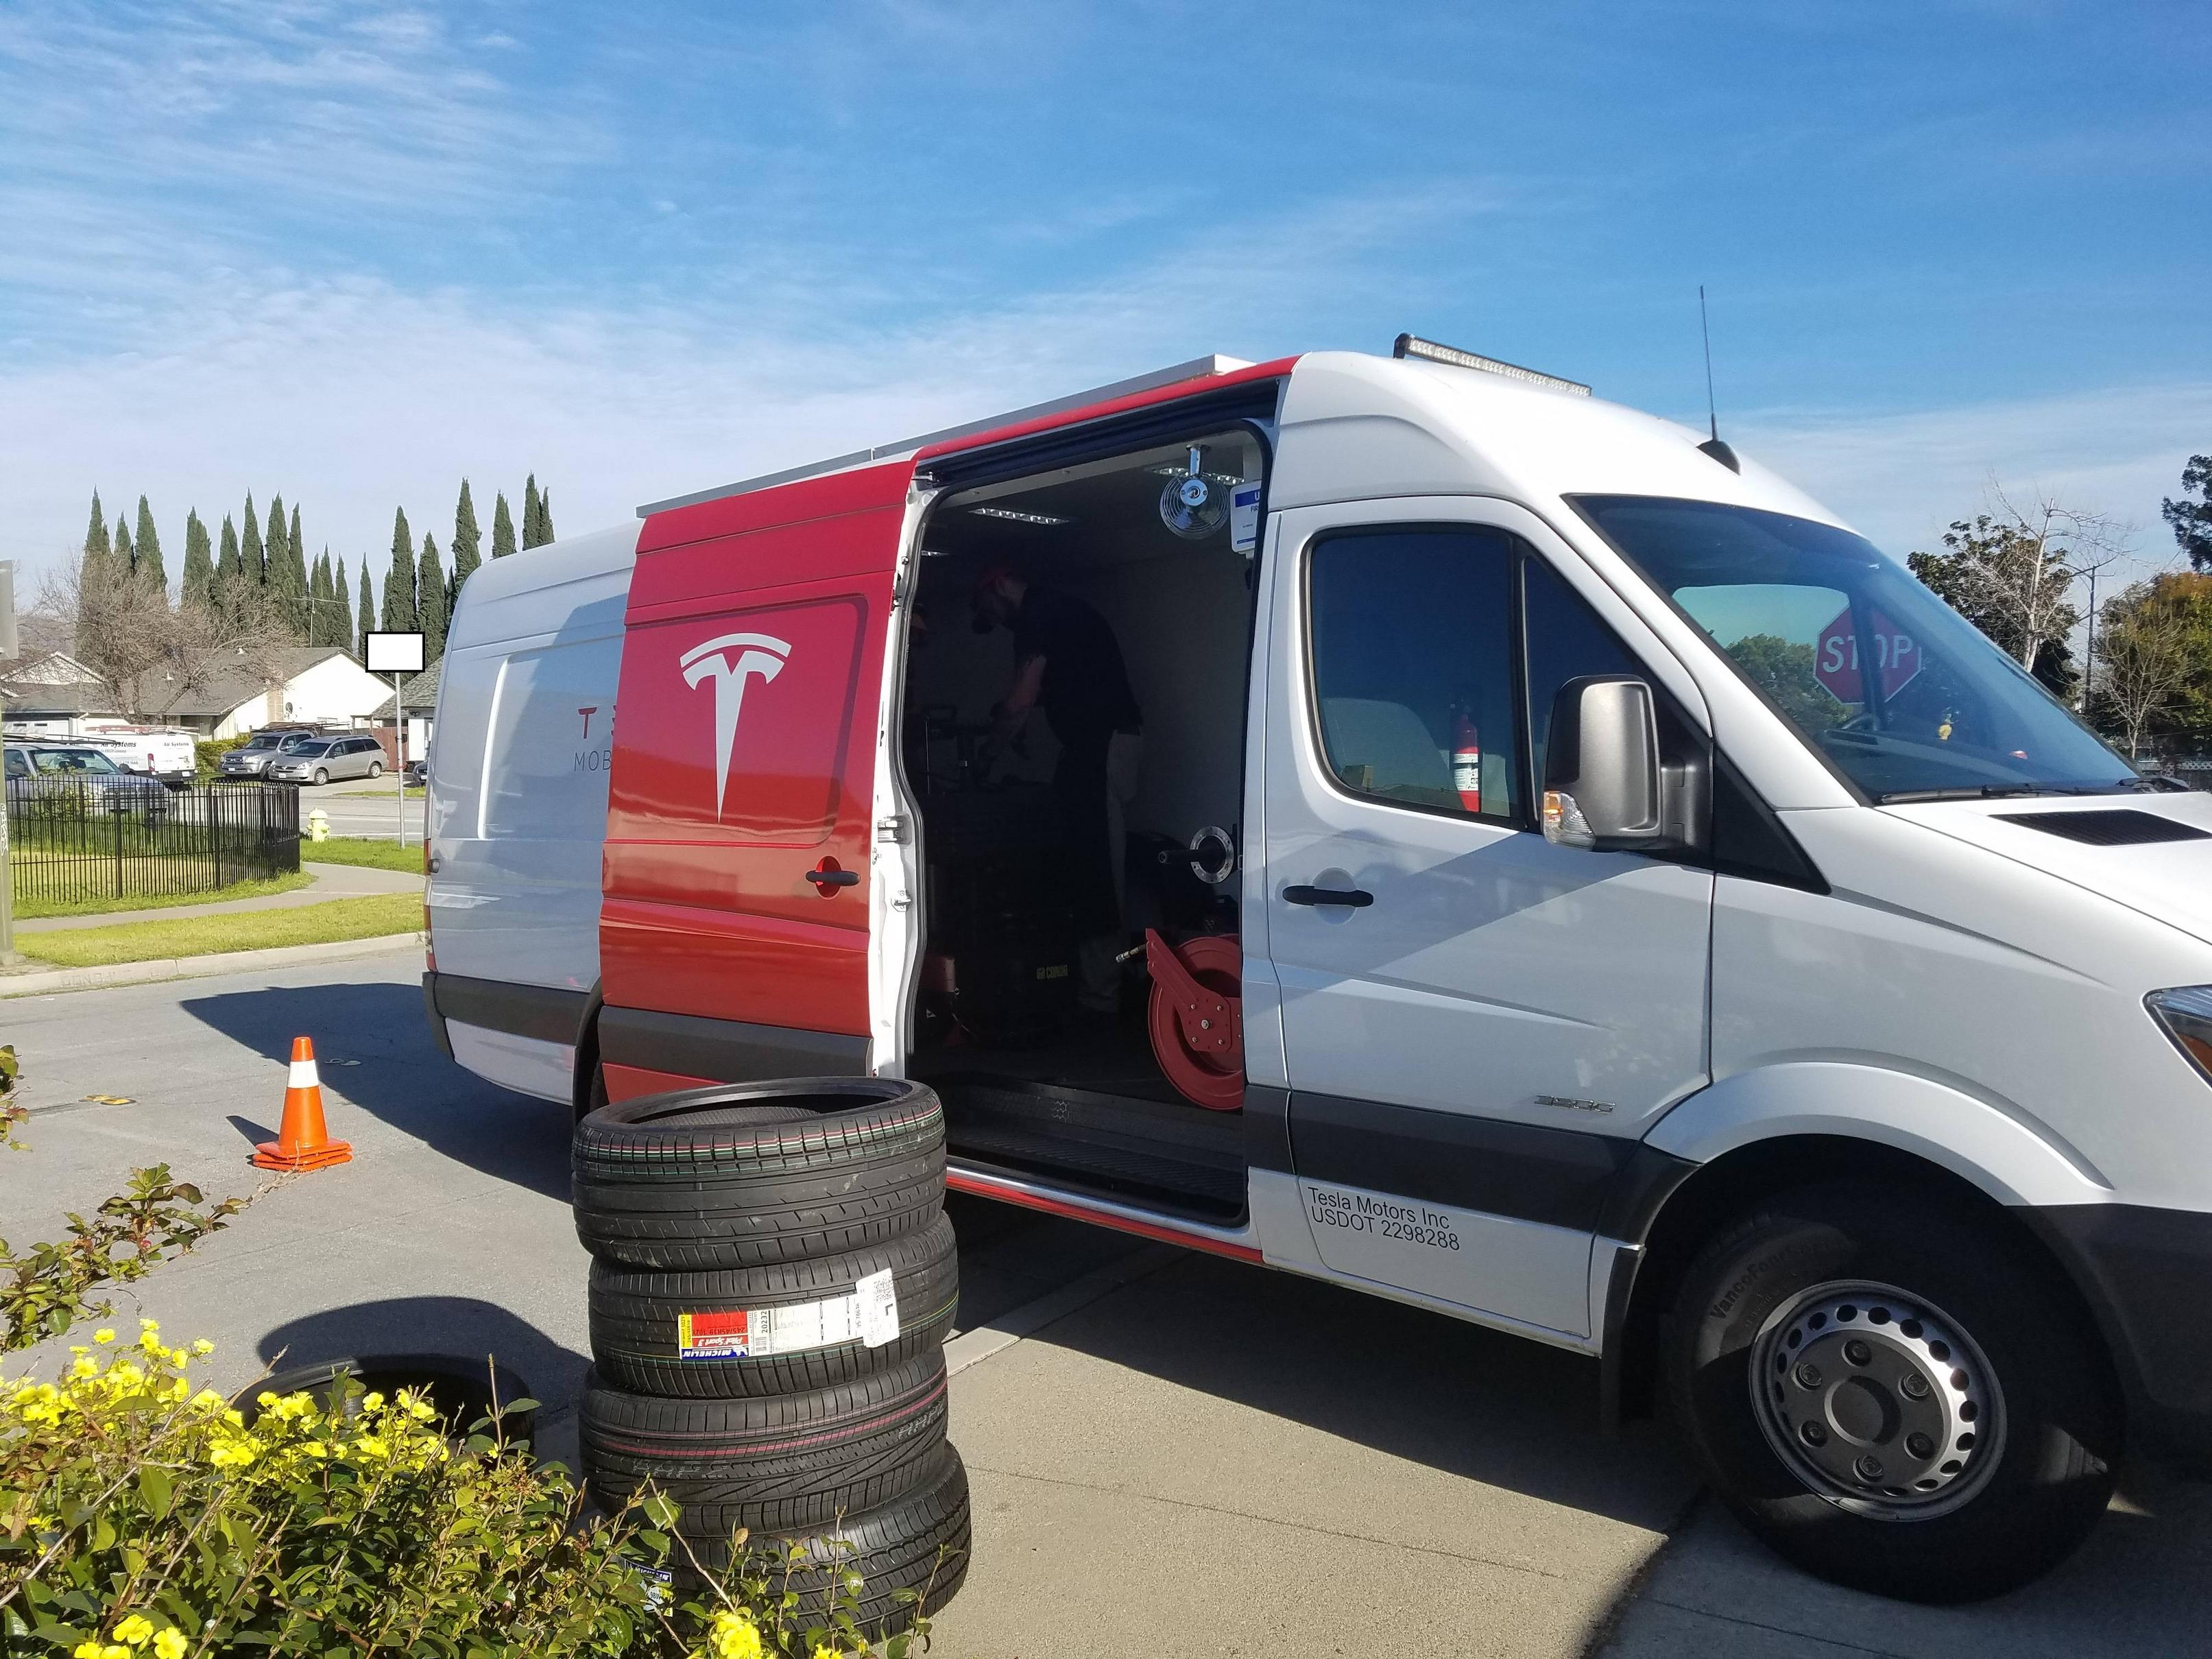 Tesla-mobile-service-van-tire-repair-3